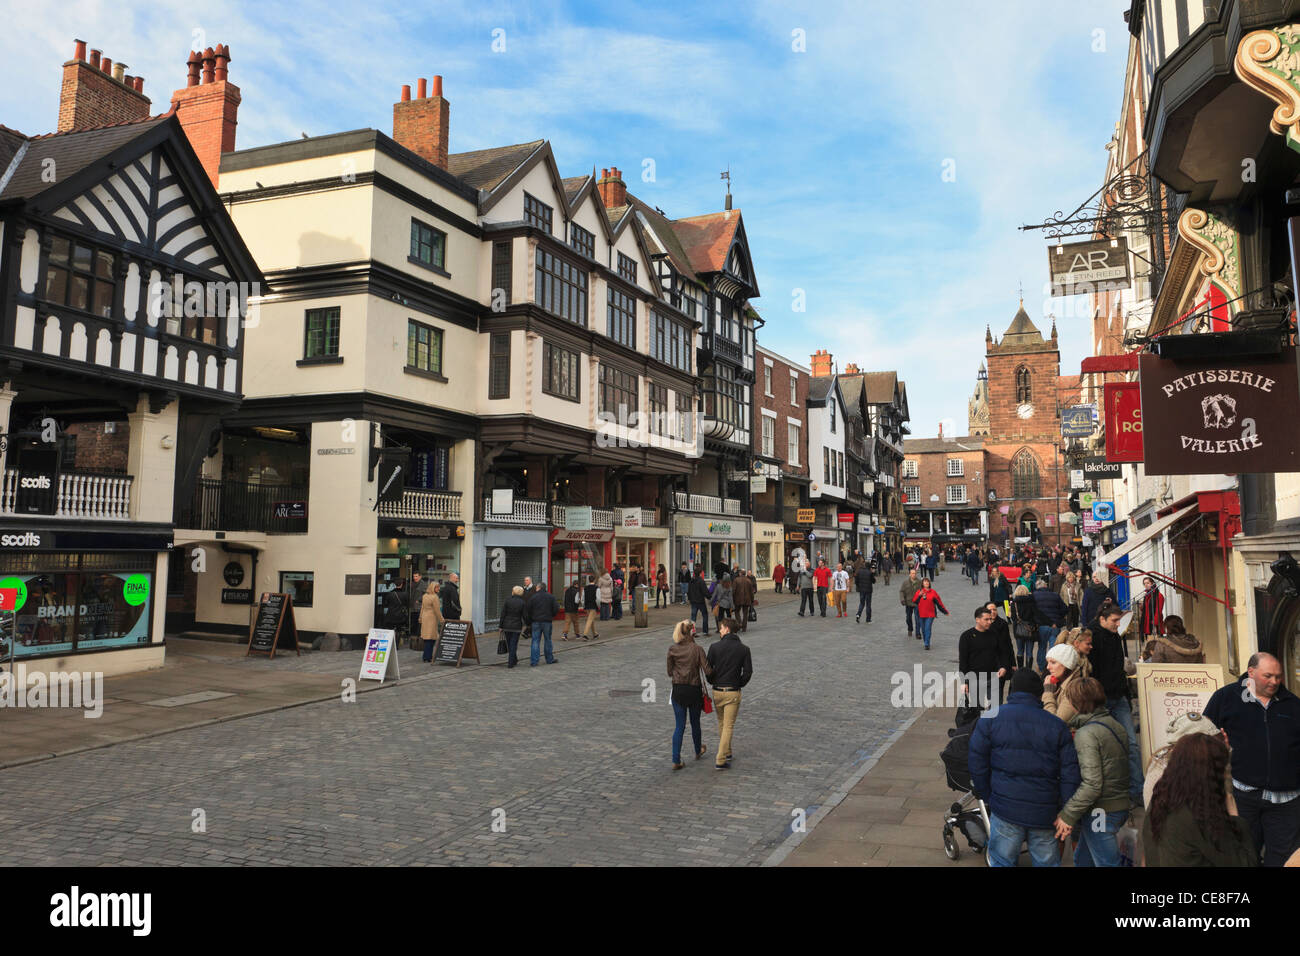 Busy pedestrianised cobbled street scene with shops in historic Tudor buildings in city town centre. Bridge Street - Stock Image